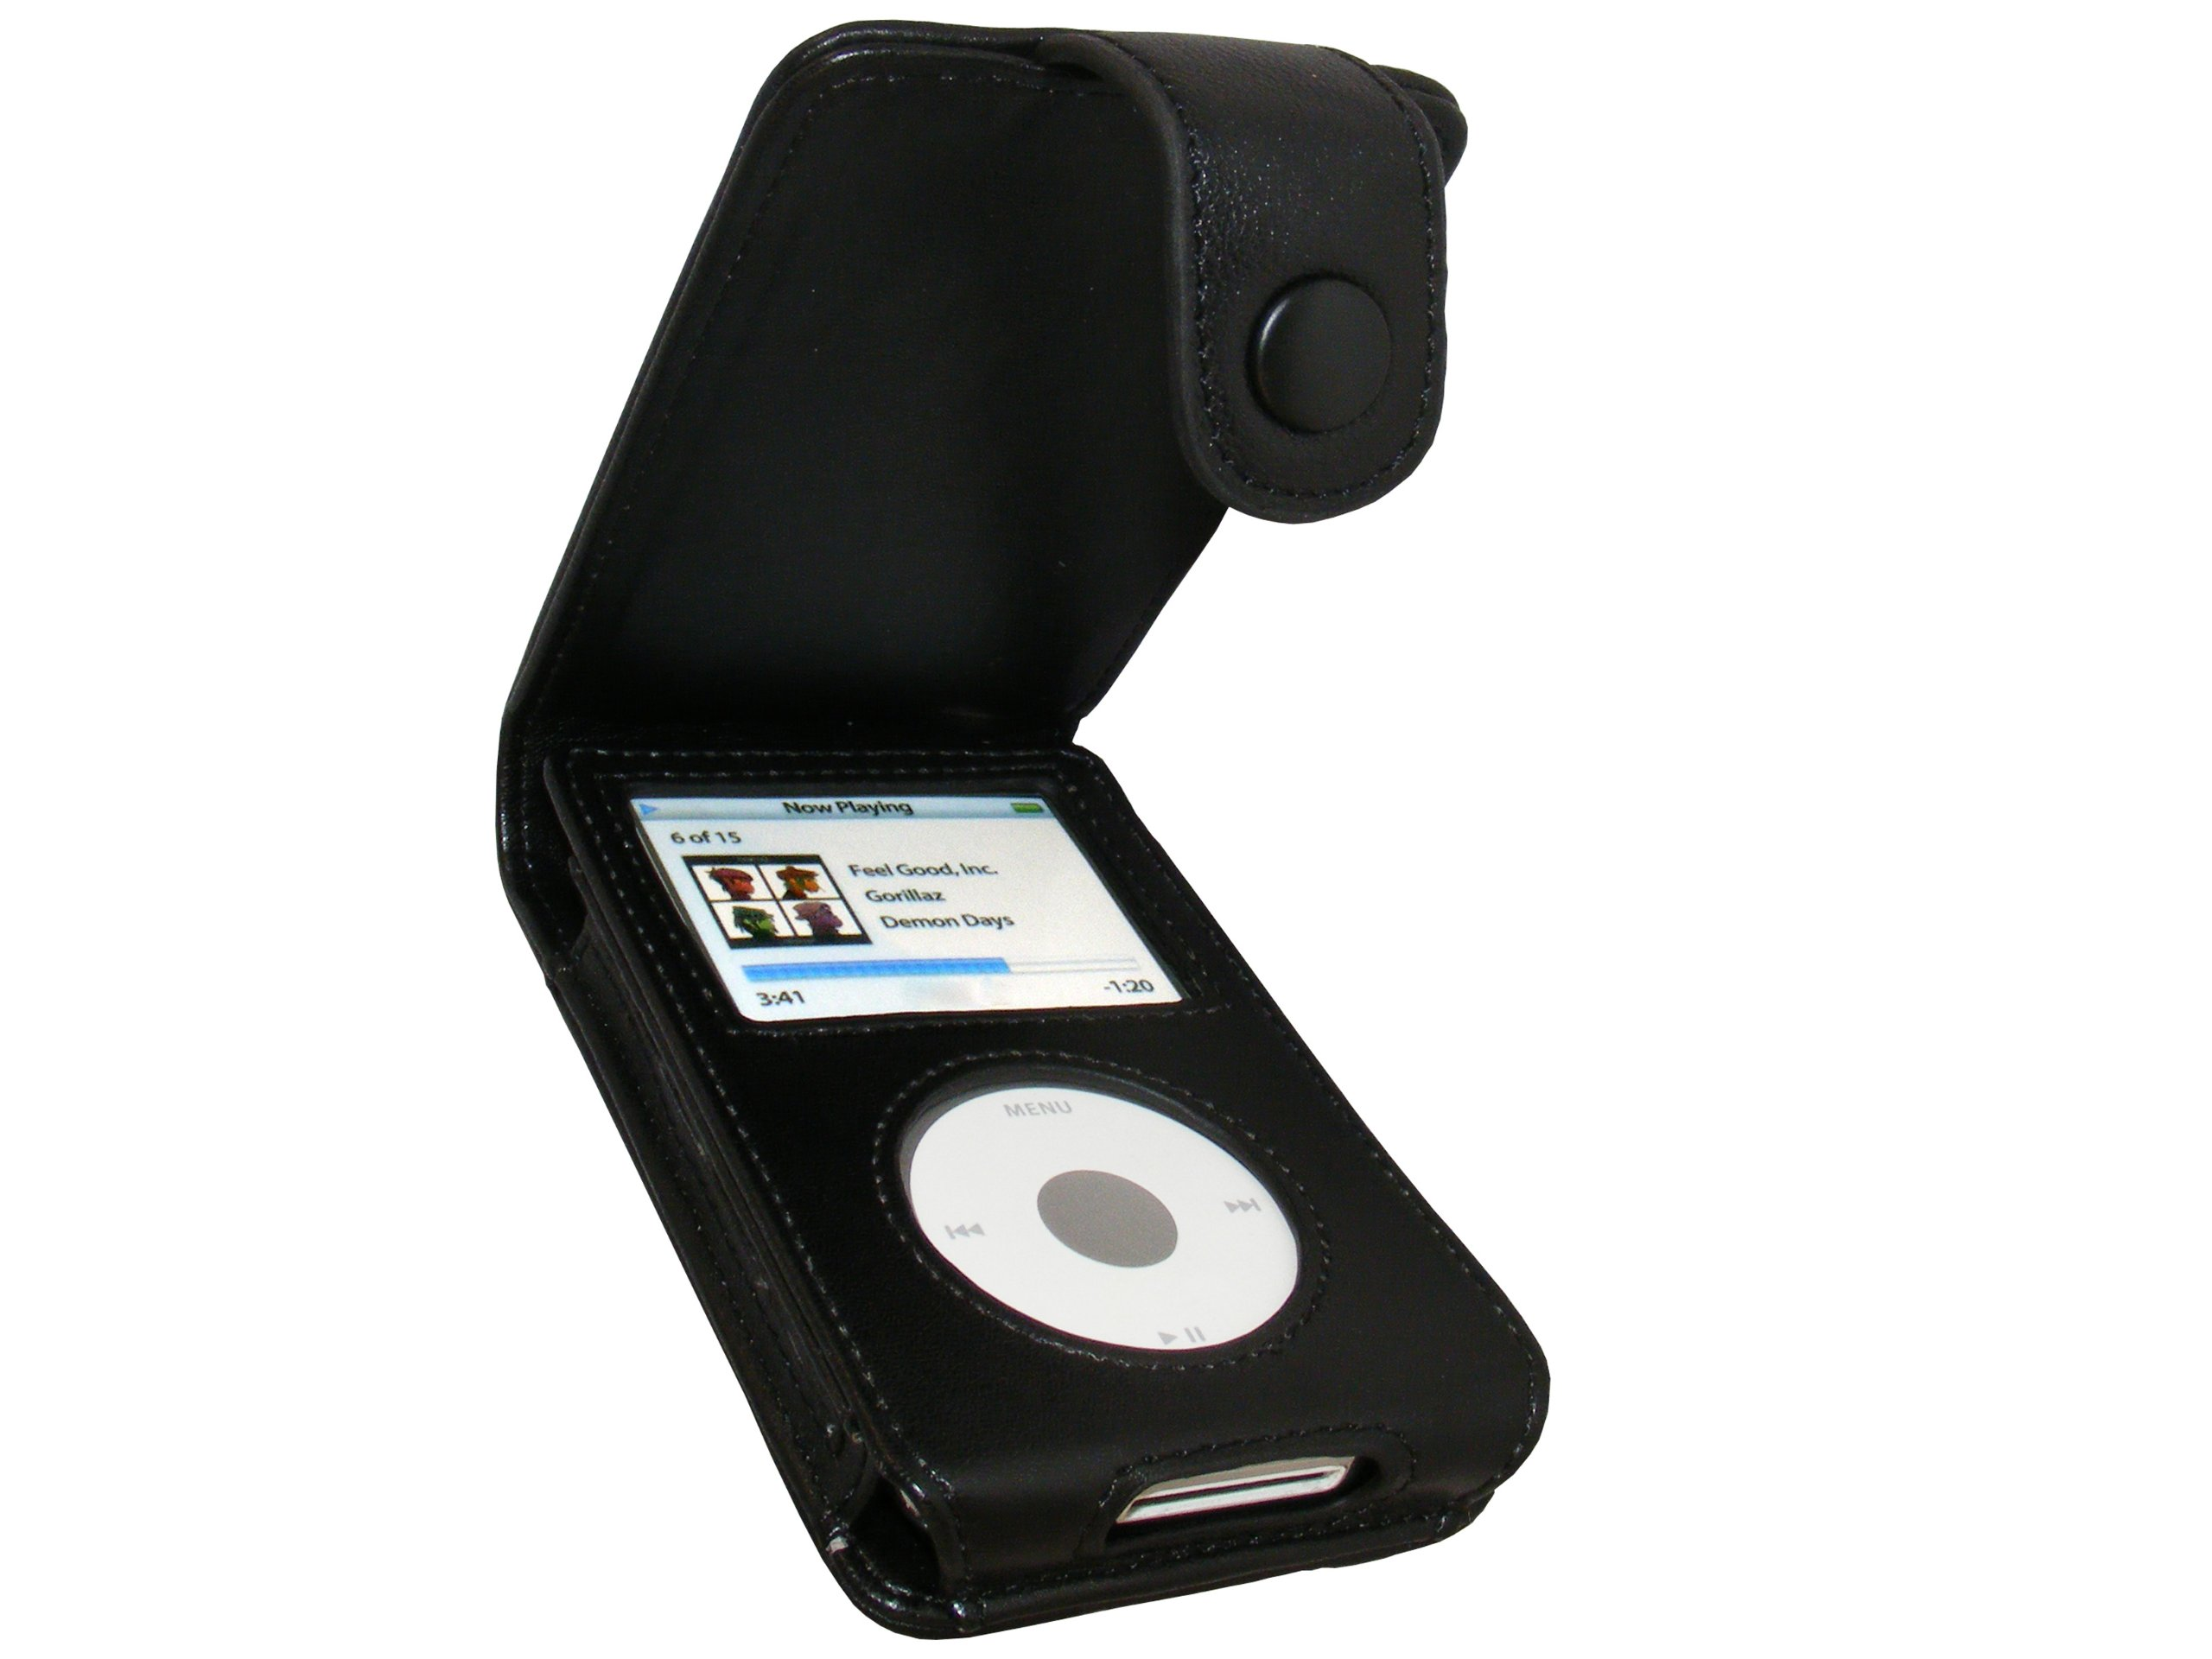 igadgitz Black Genuine Leather Case Cover for Apple iPod Classic 80gb, 120GB & New 160gb launched Sept 09 with Belt Clip & Screen Protector